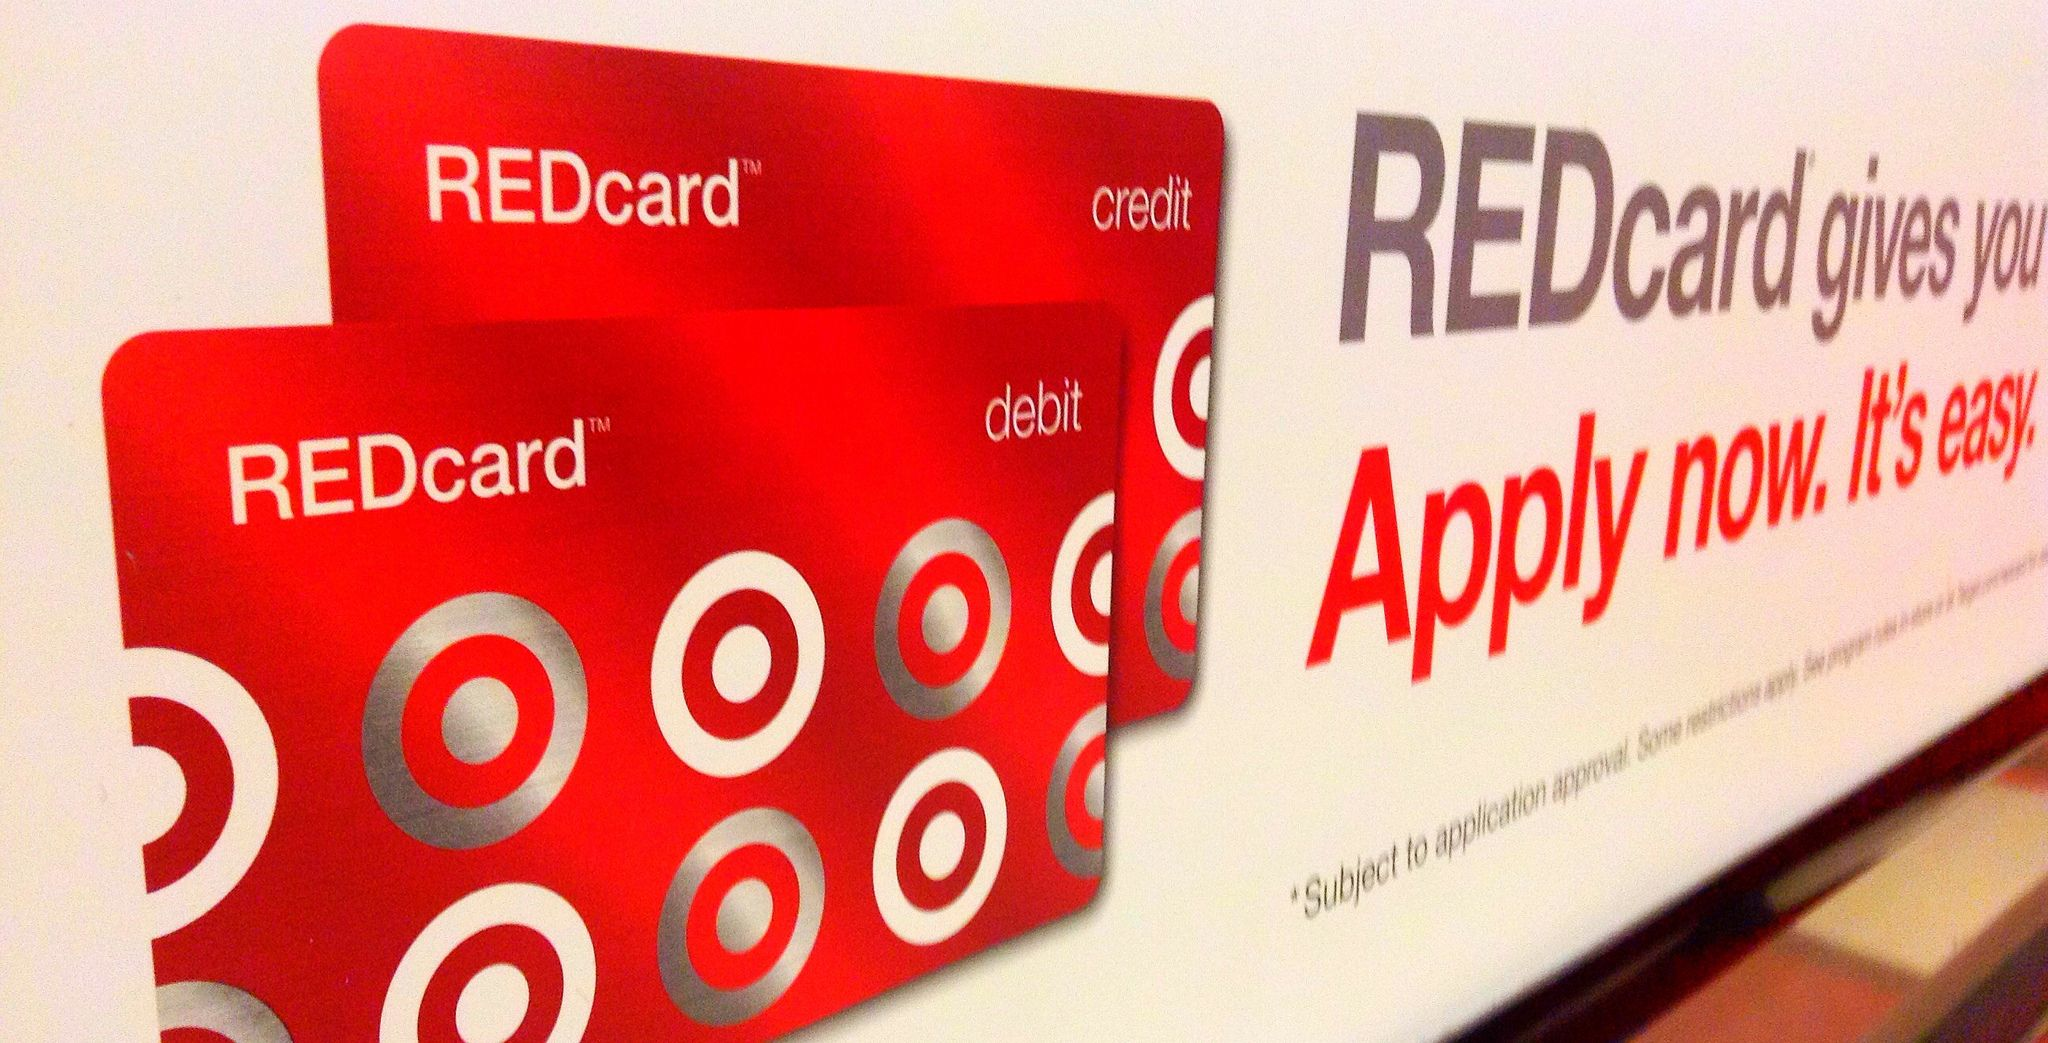 4 Benefits And 4 Downsides Of Store Credit Cards With Images